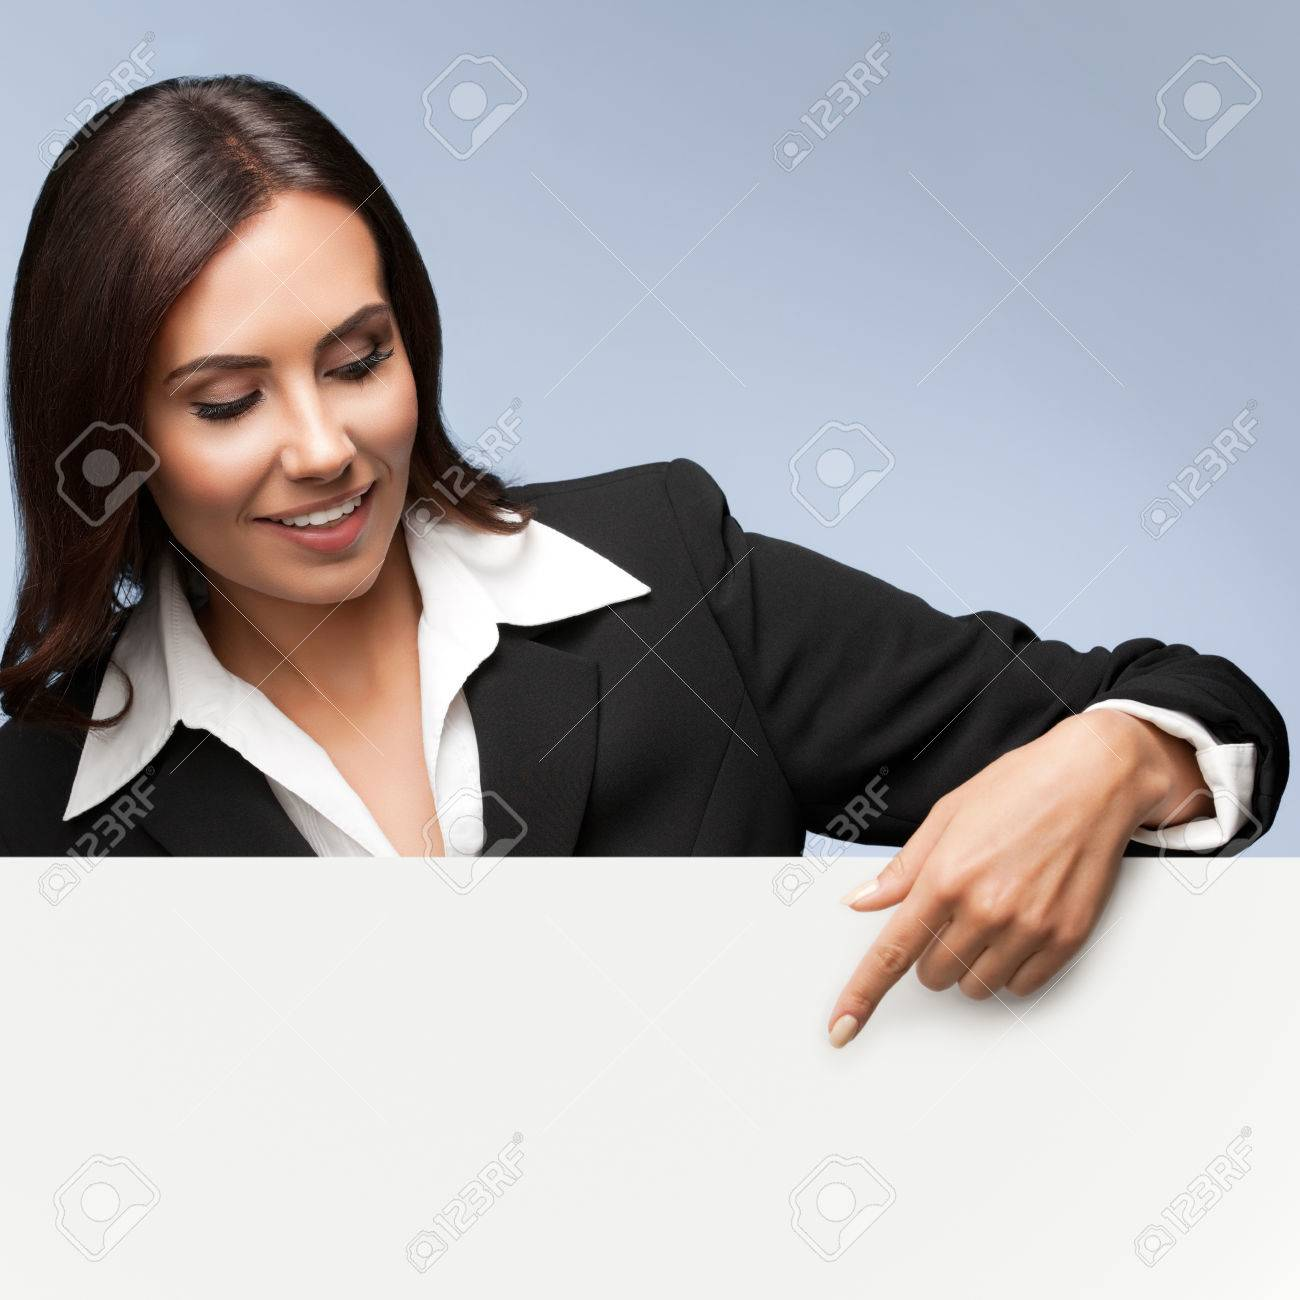 Portrait of happy smiling young businesswoman in black suit, showing blank signboard with blank copyspace area for slogan or text, over grey background - 51350129